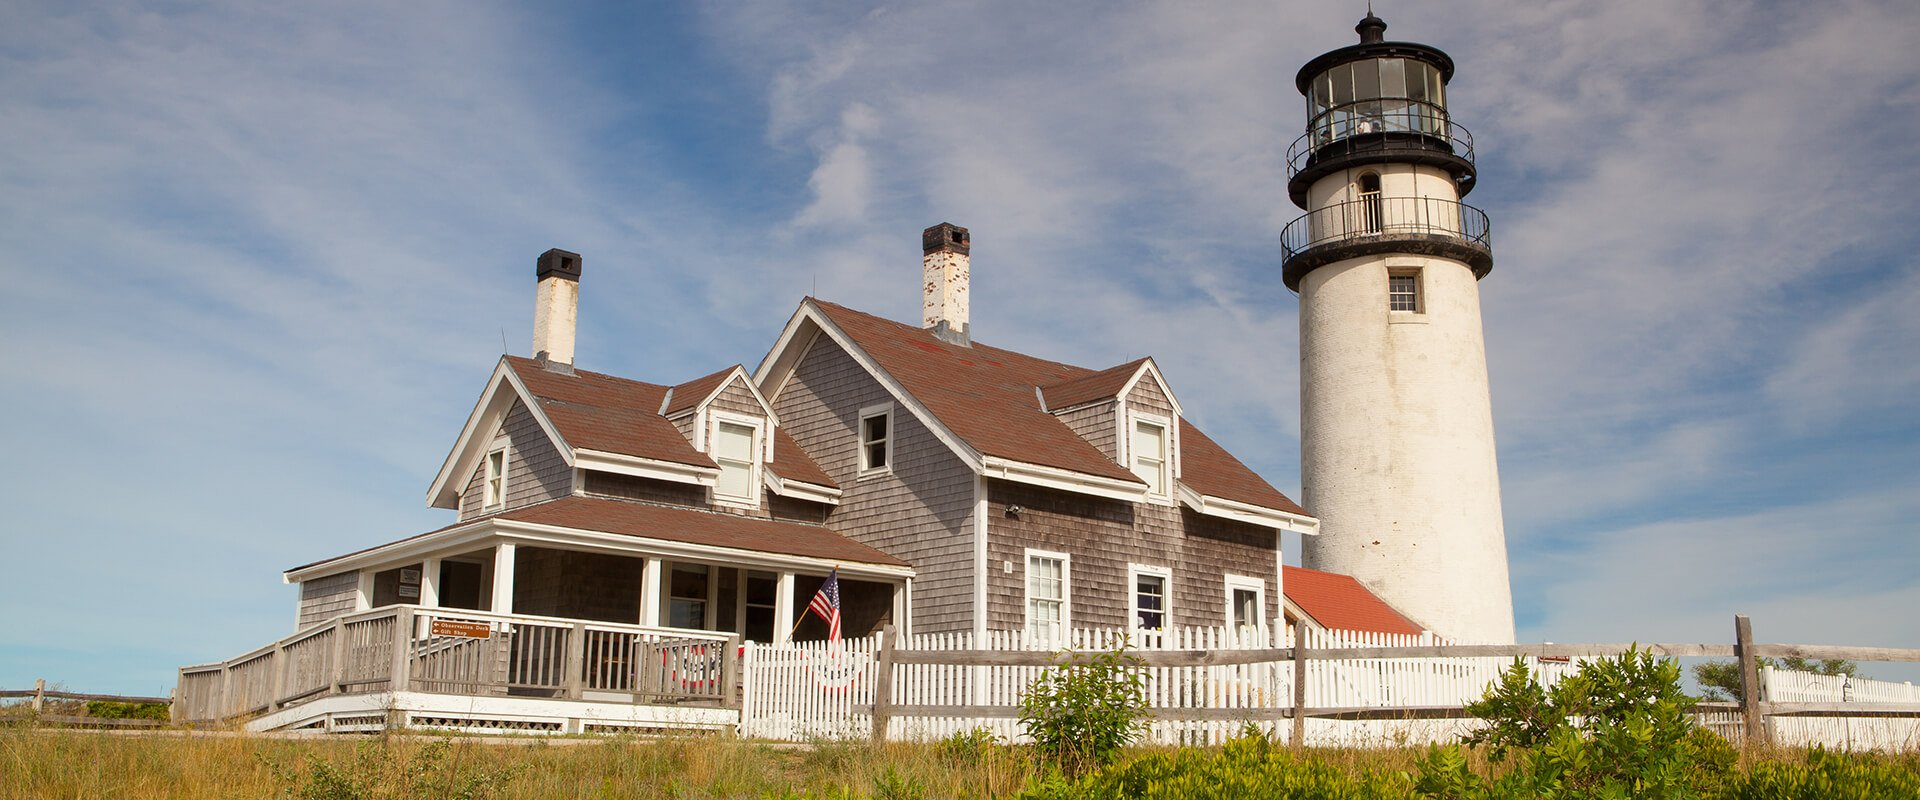 The Highland Light on the Cape Cod, Massachsetts